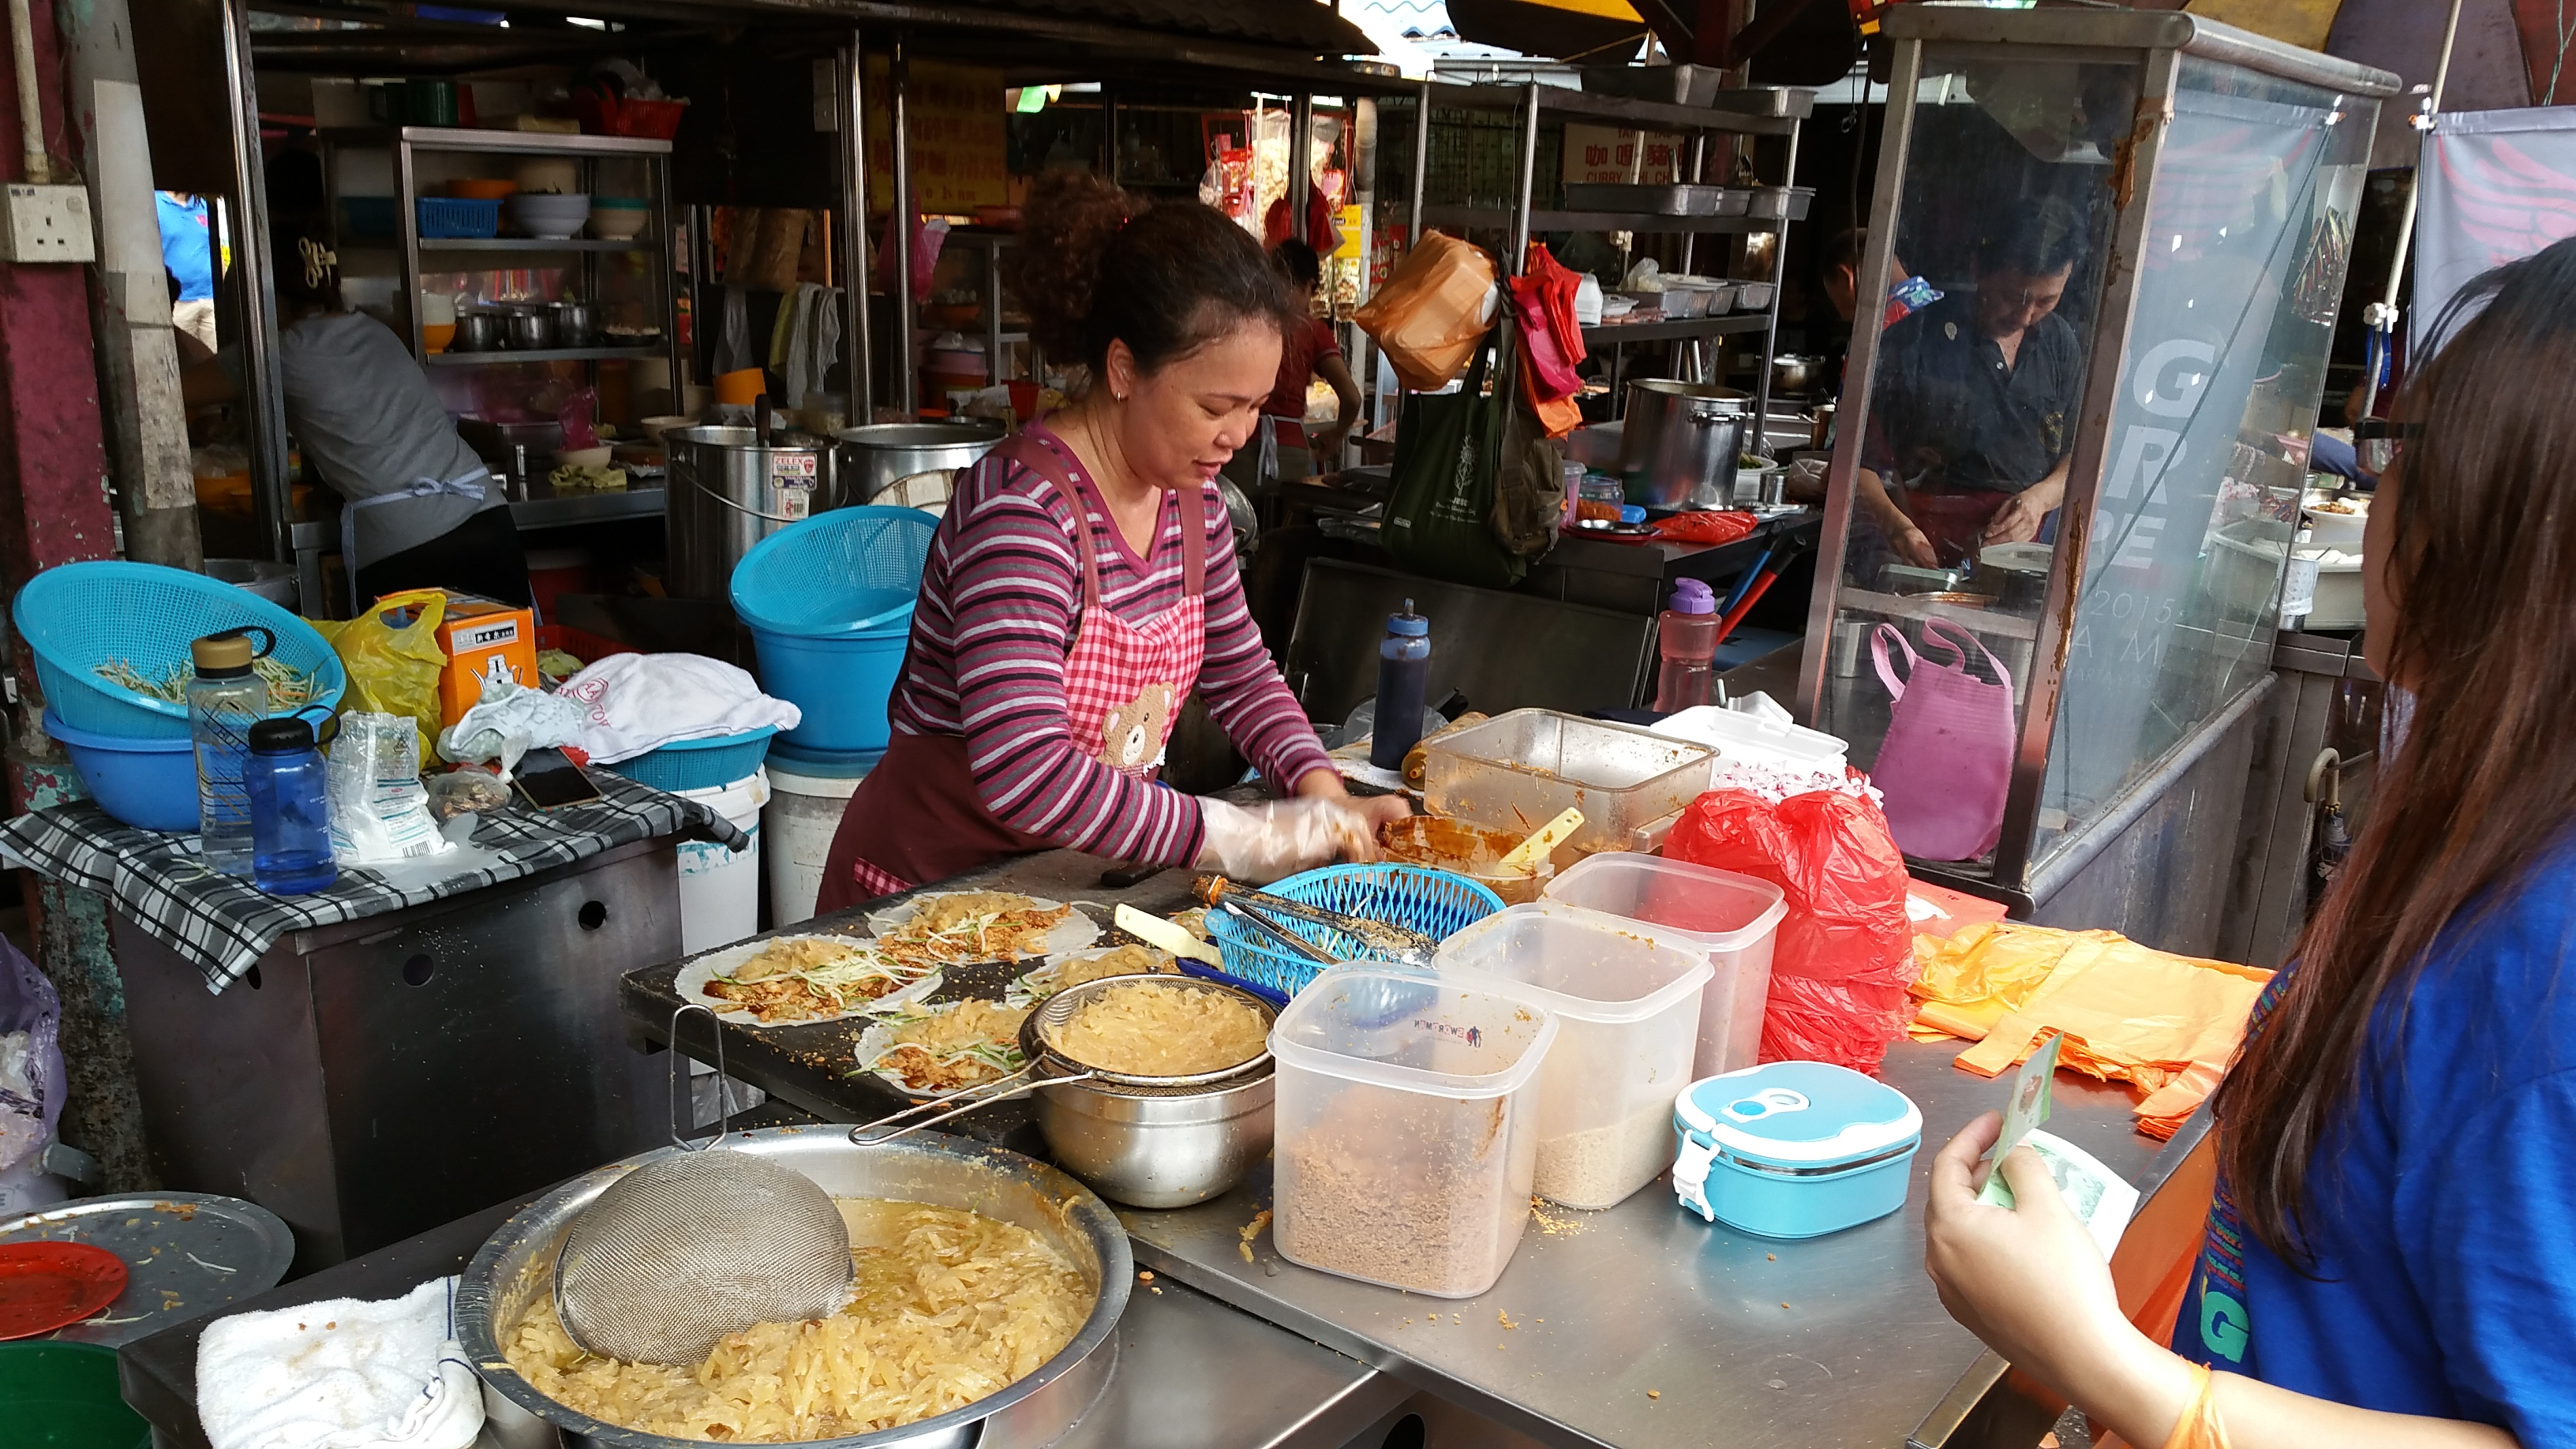 KL Street Food  Jalan Alor Imbi Market and Lot 10  The